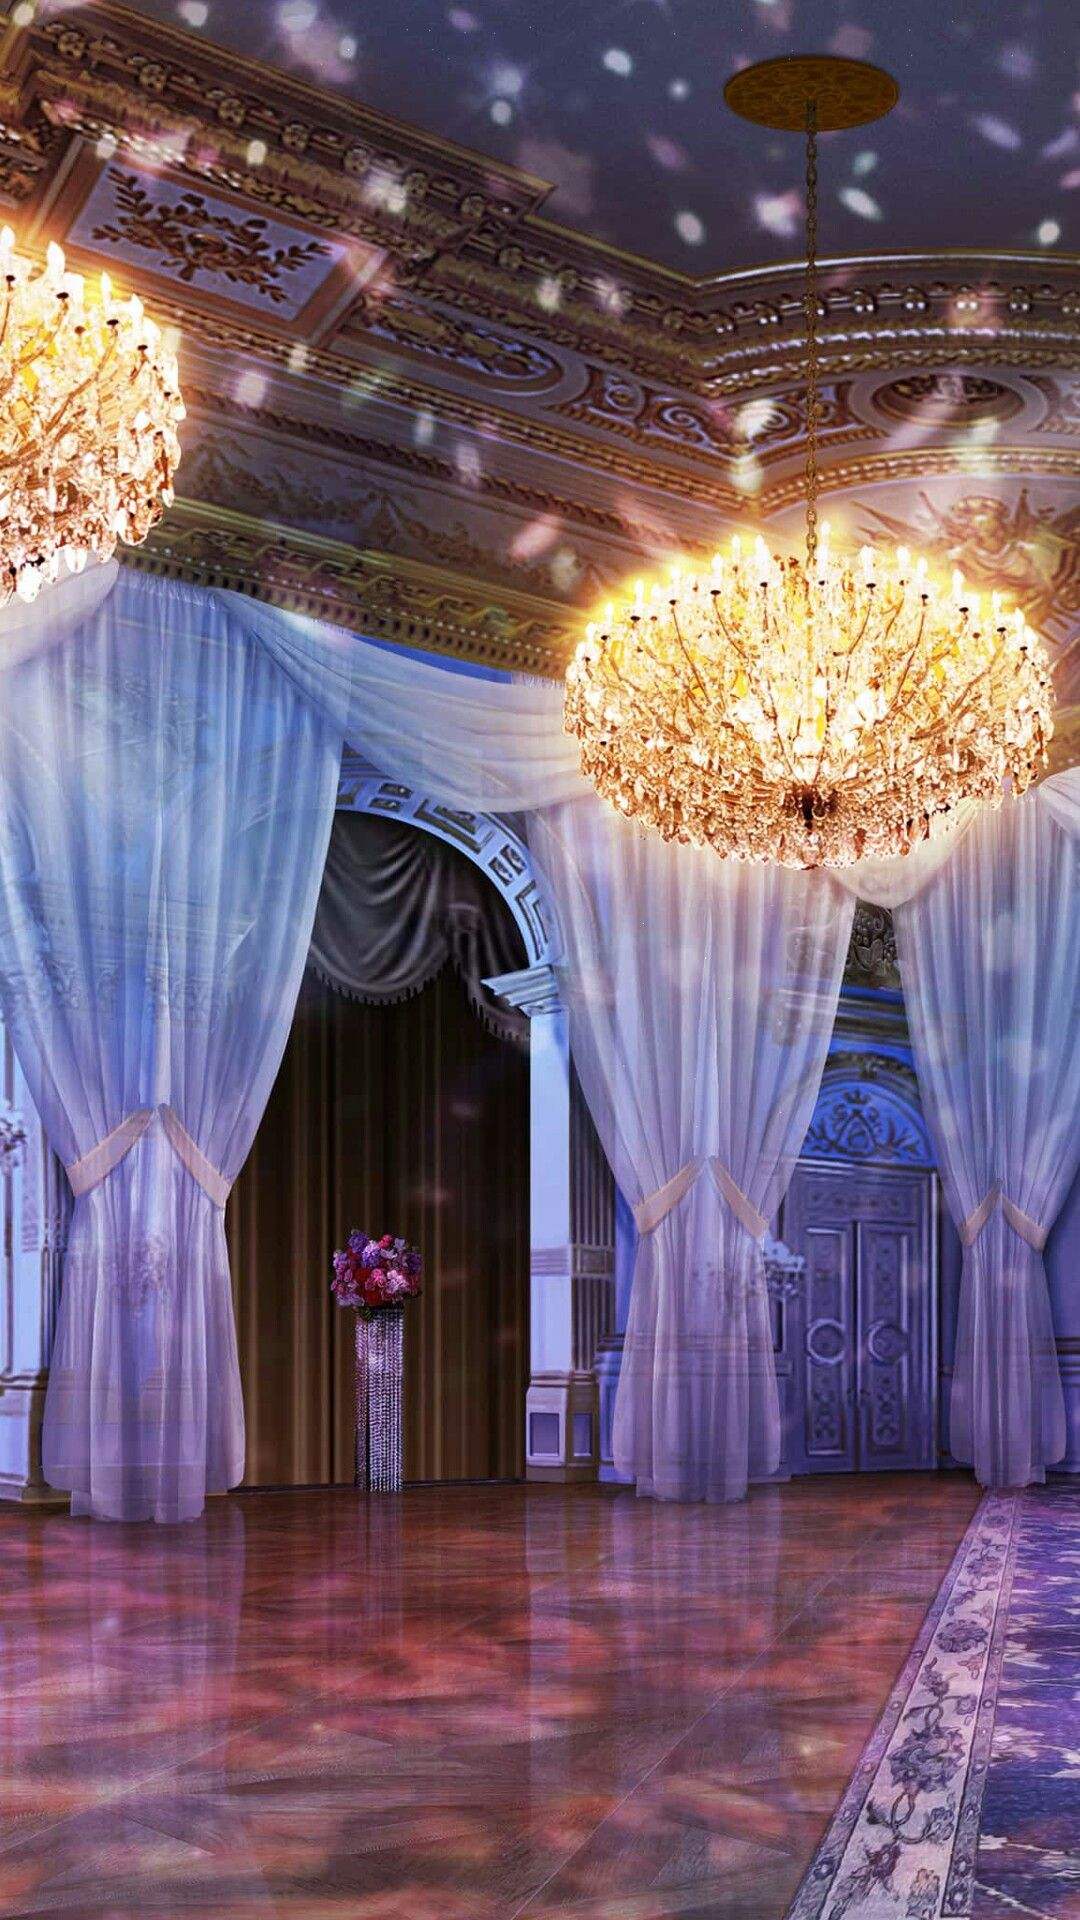 Ballroom at the Gala night Anime backgrounds wallpapers